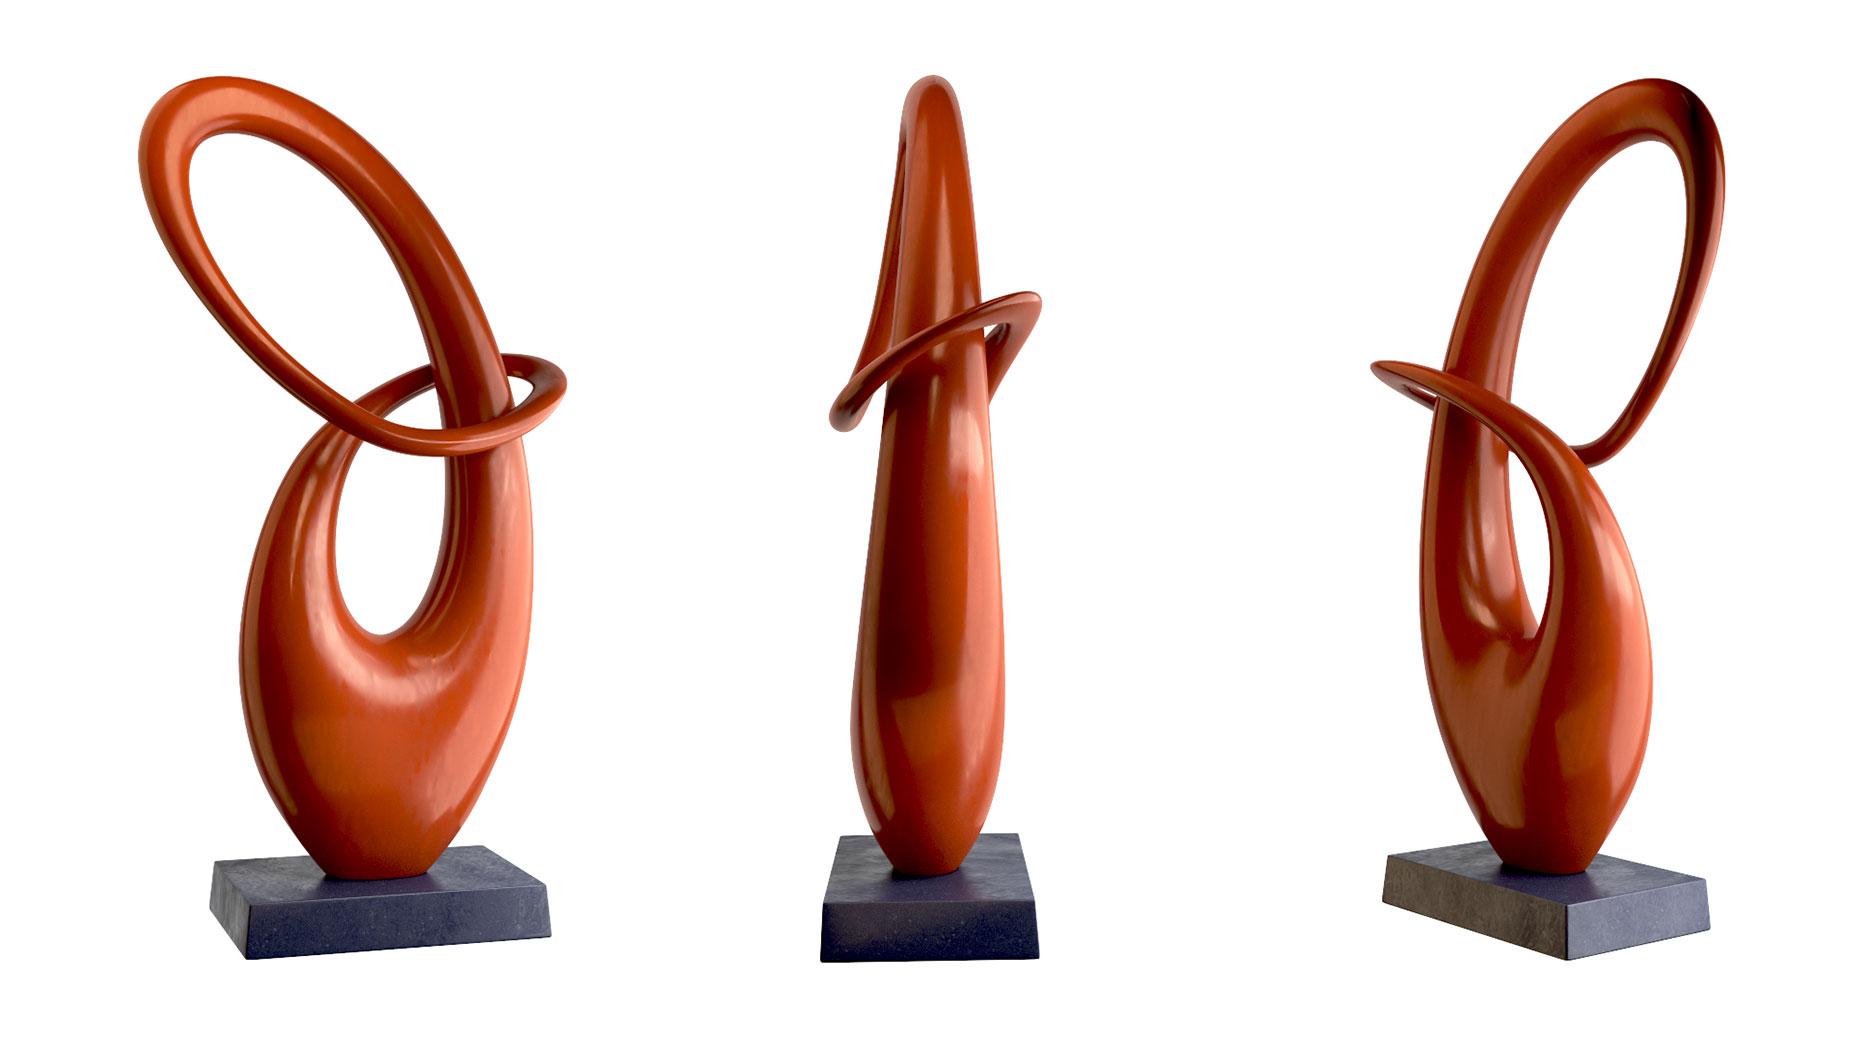 gallery-Modern-Curved-Sculpture-02